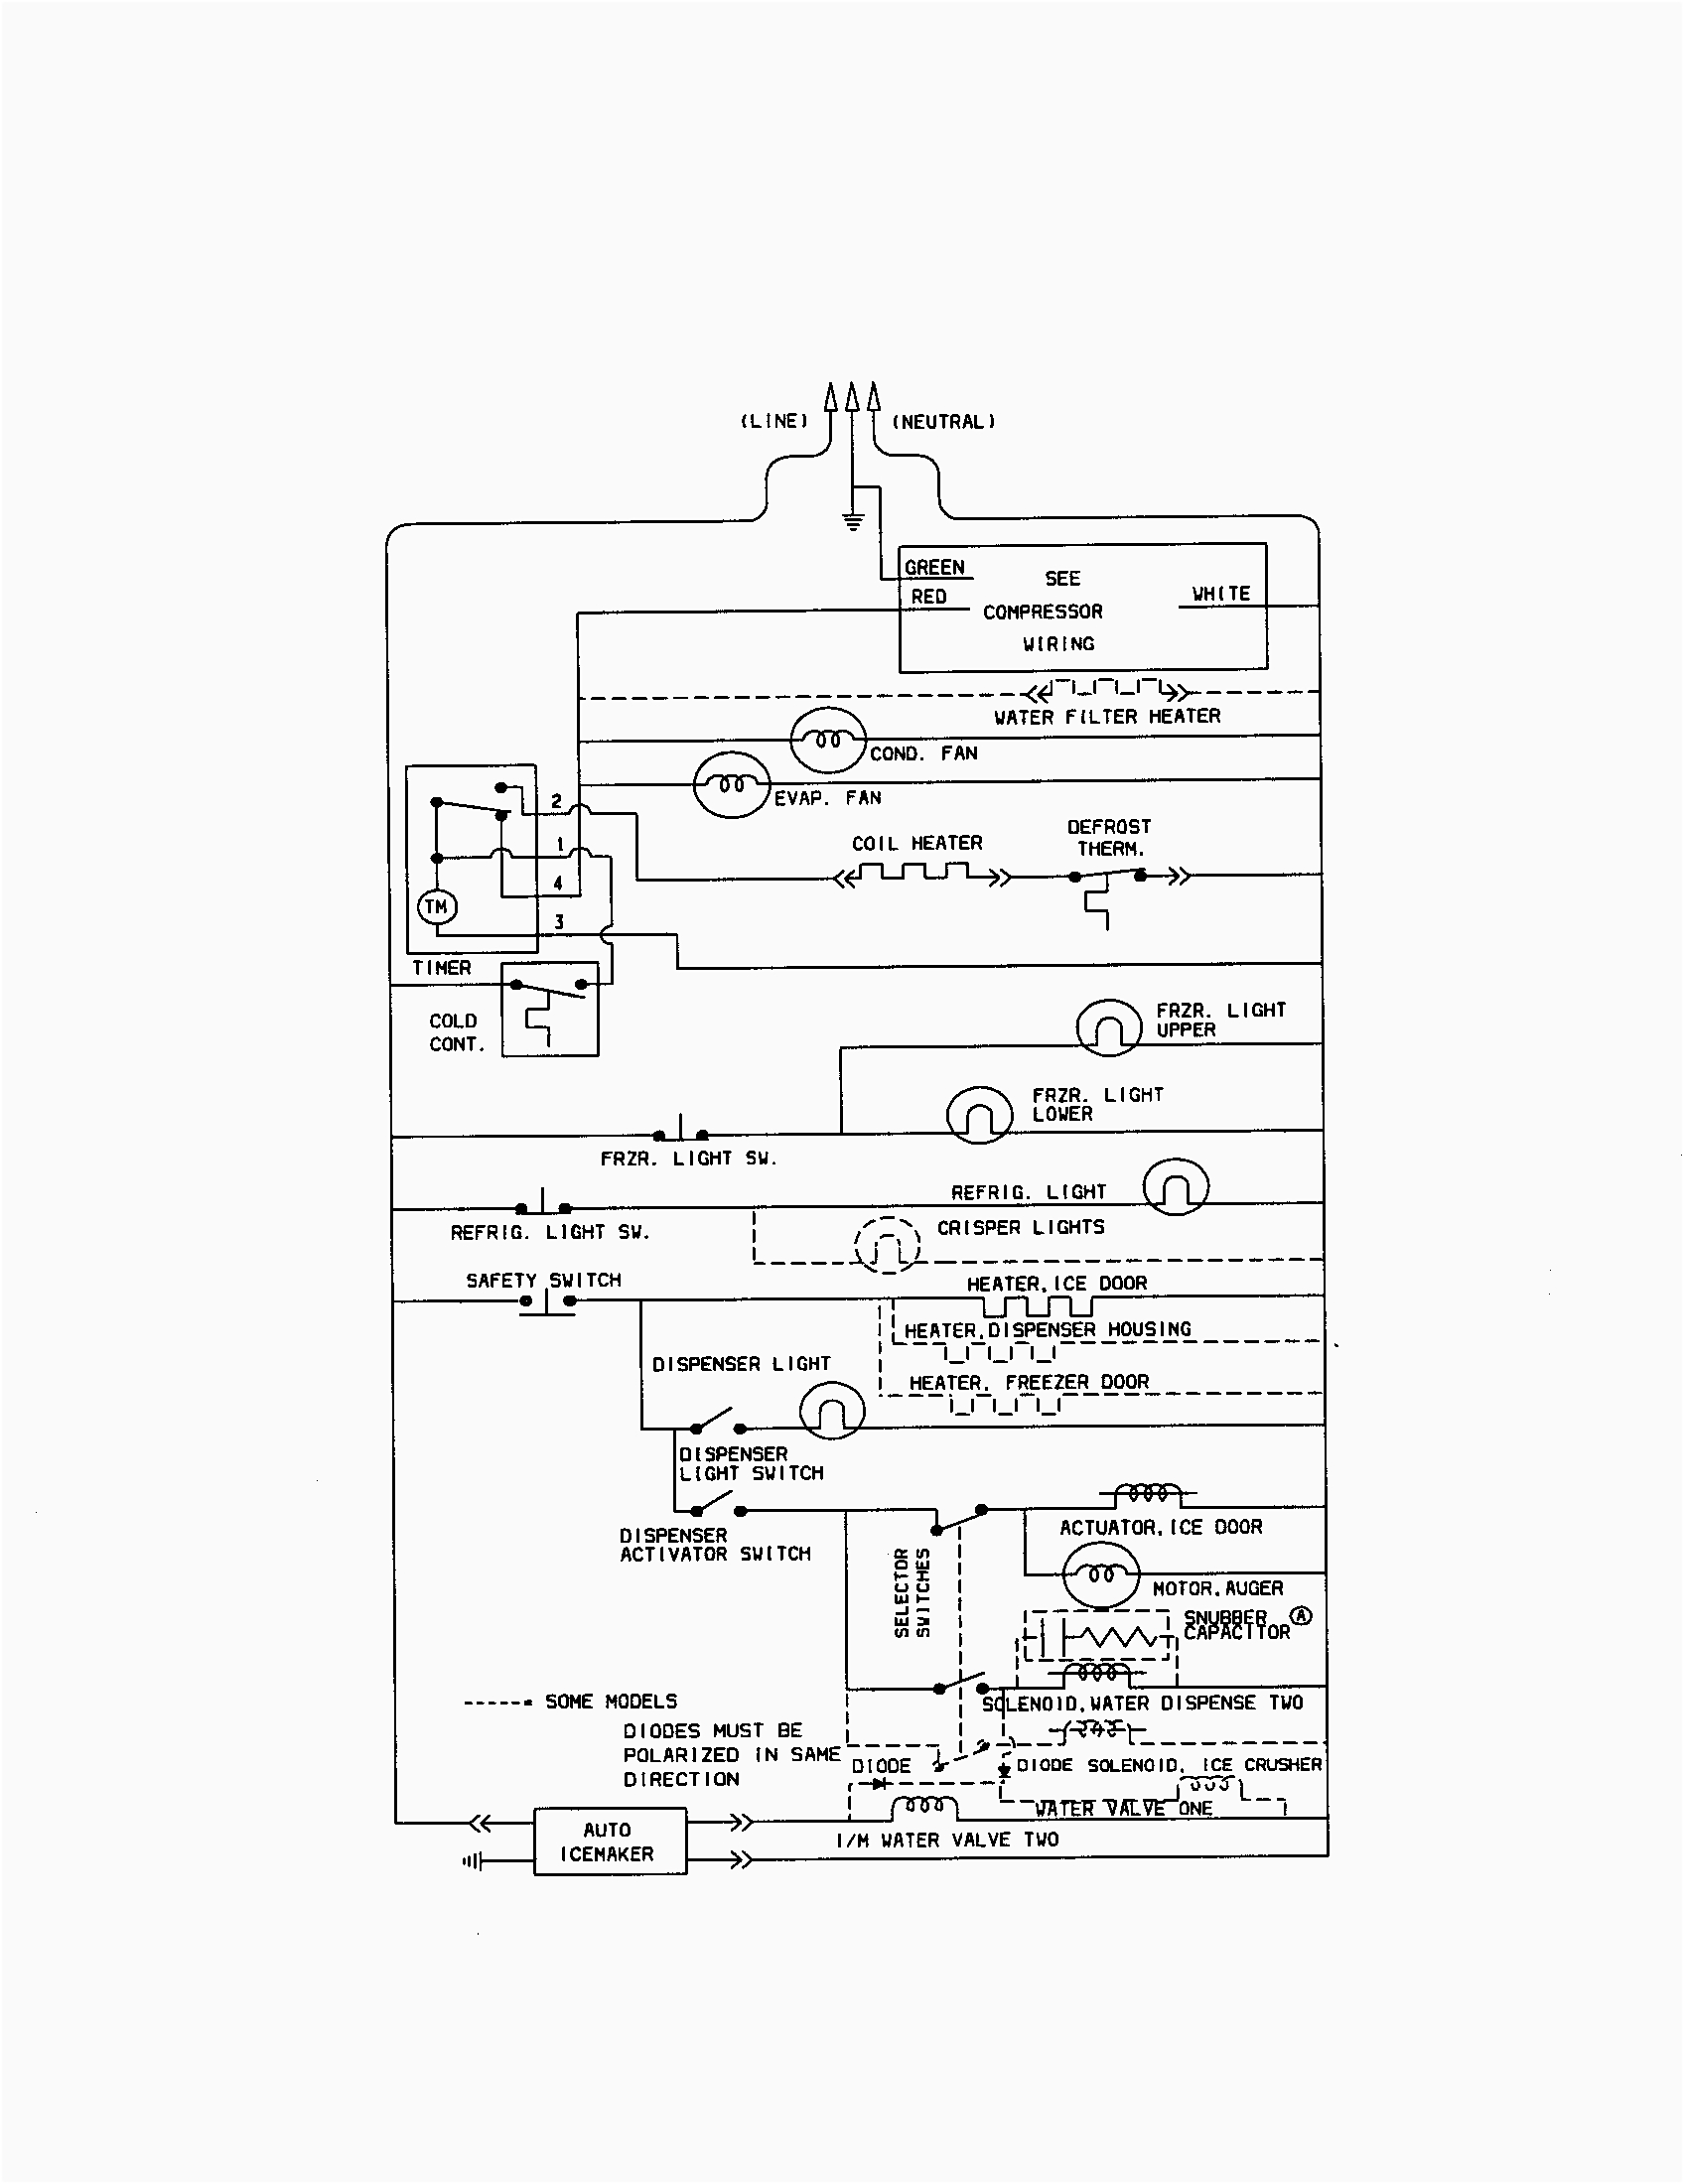 kenmore side by side refrigerator wiring diagram Download-Kenmore Refrigerator Wiring Diagram For Amazing And Ice Maker 19-b